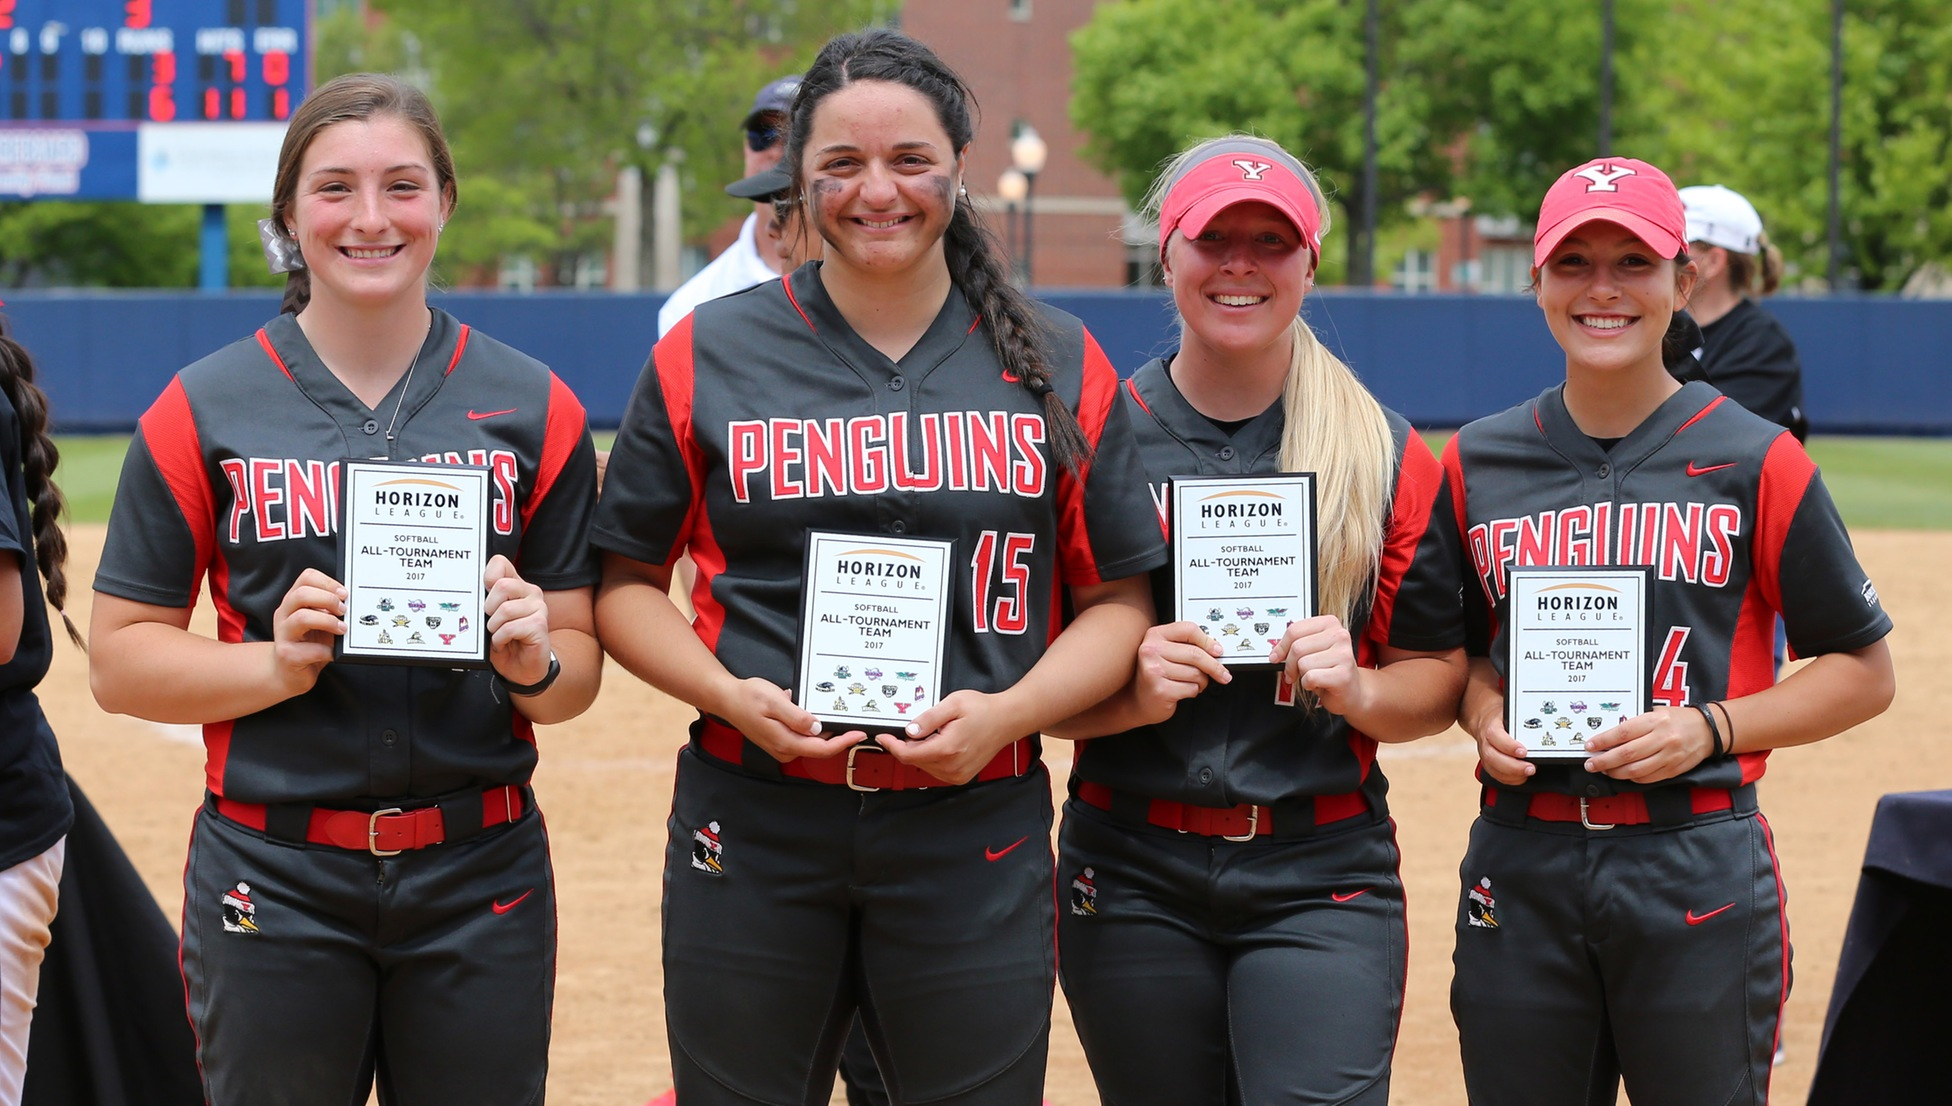 Horizon League All-Tournament Team selections Maddi Lusk, Maria Lacatena, Sarah Dowd and Cali Mikovich